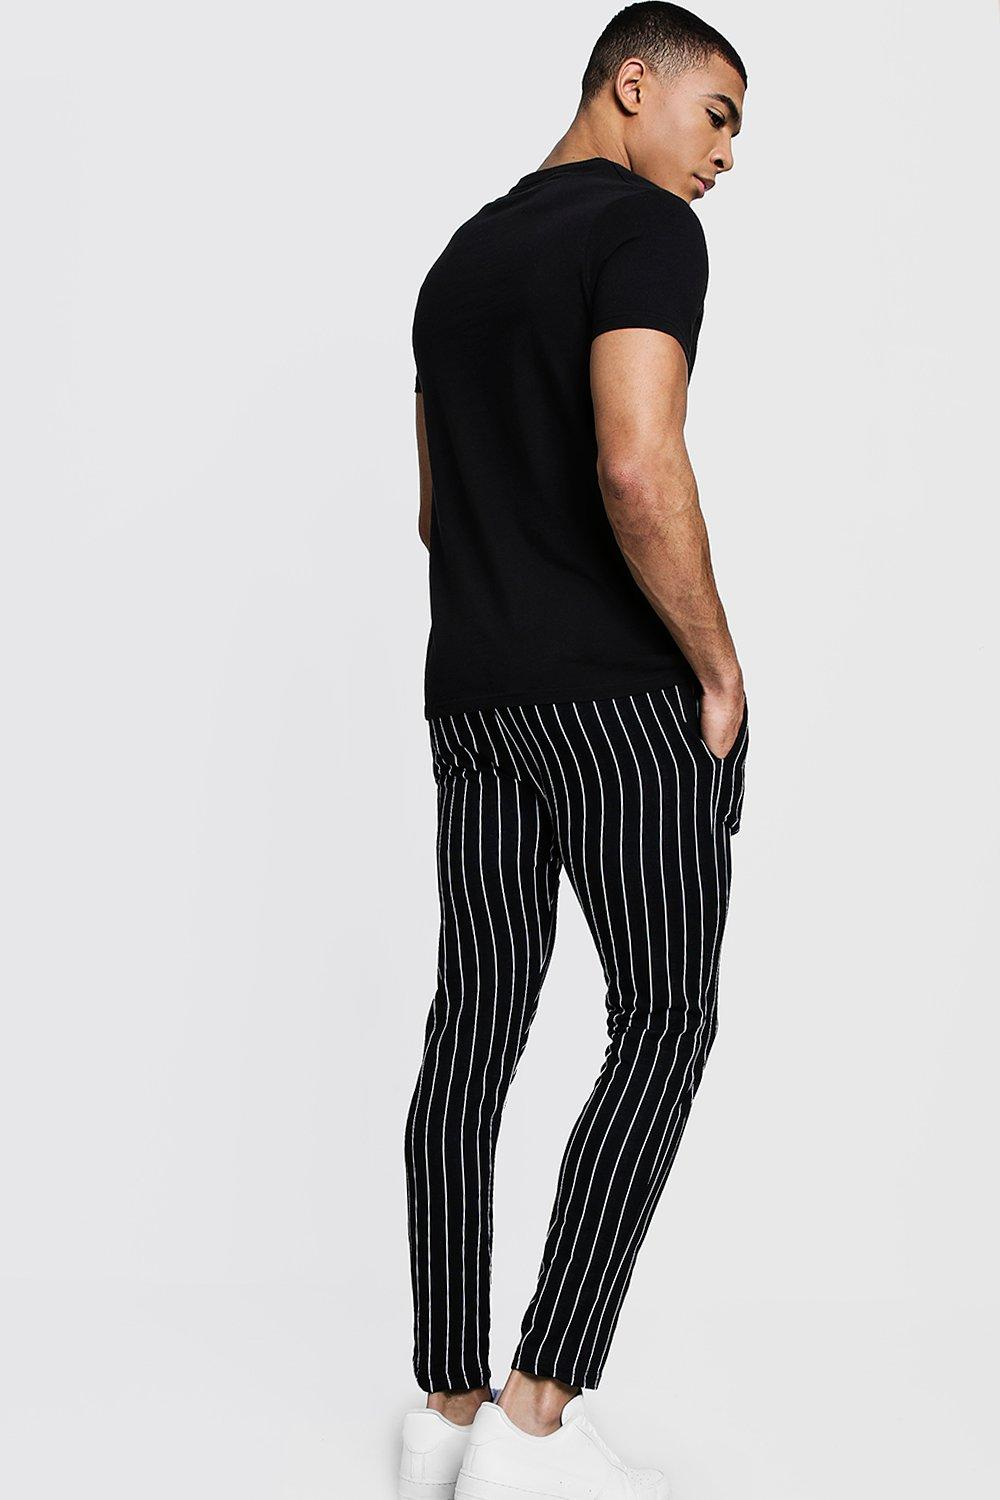 Joggers Striped black Skinny black Fit Striped Fit Joggers Skinny Skinny Striped Fit RqxS6x7wvH